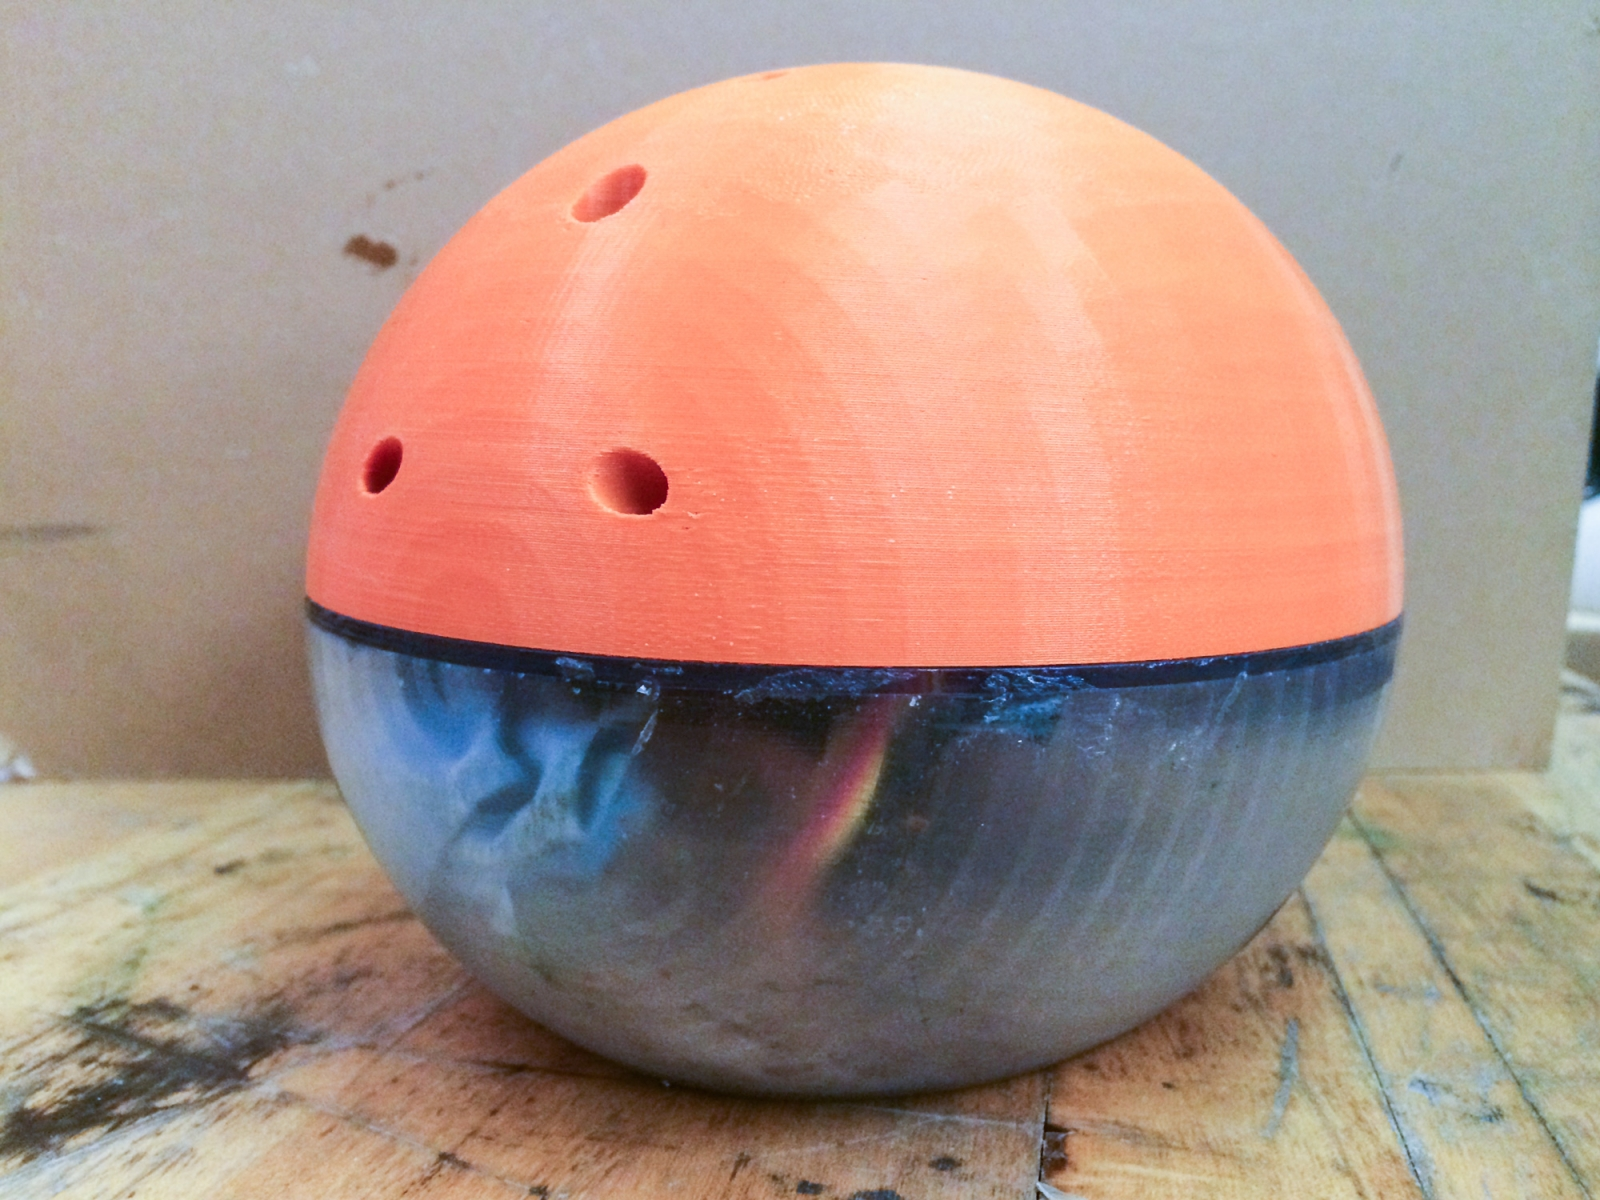 MIT's new underwater robot is made up of 3D-printed components